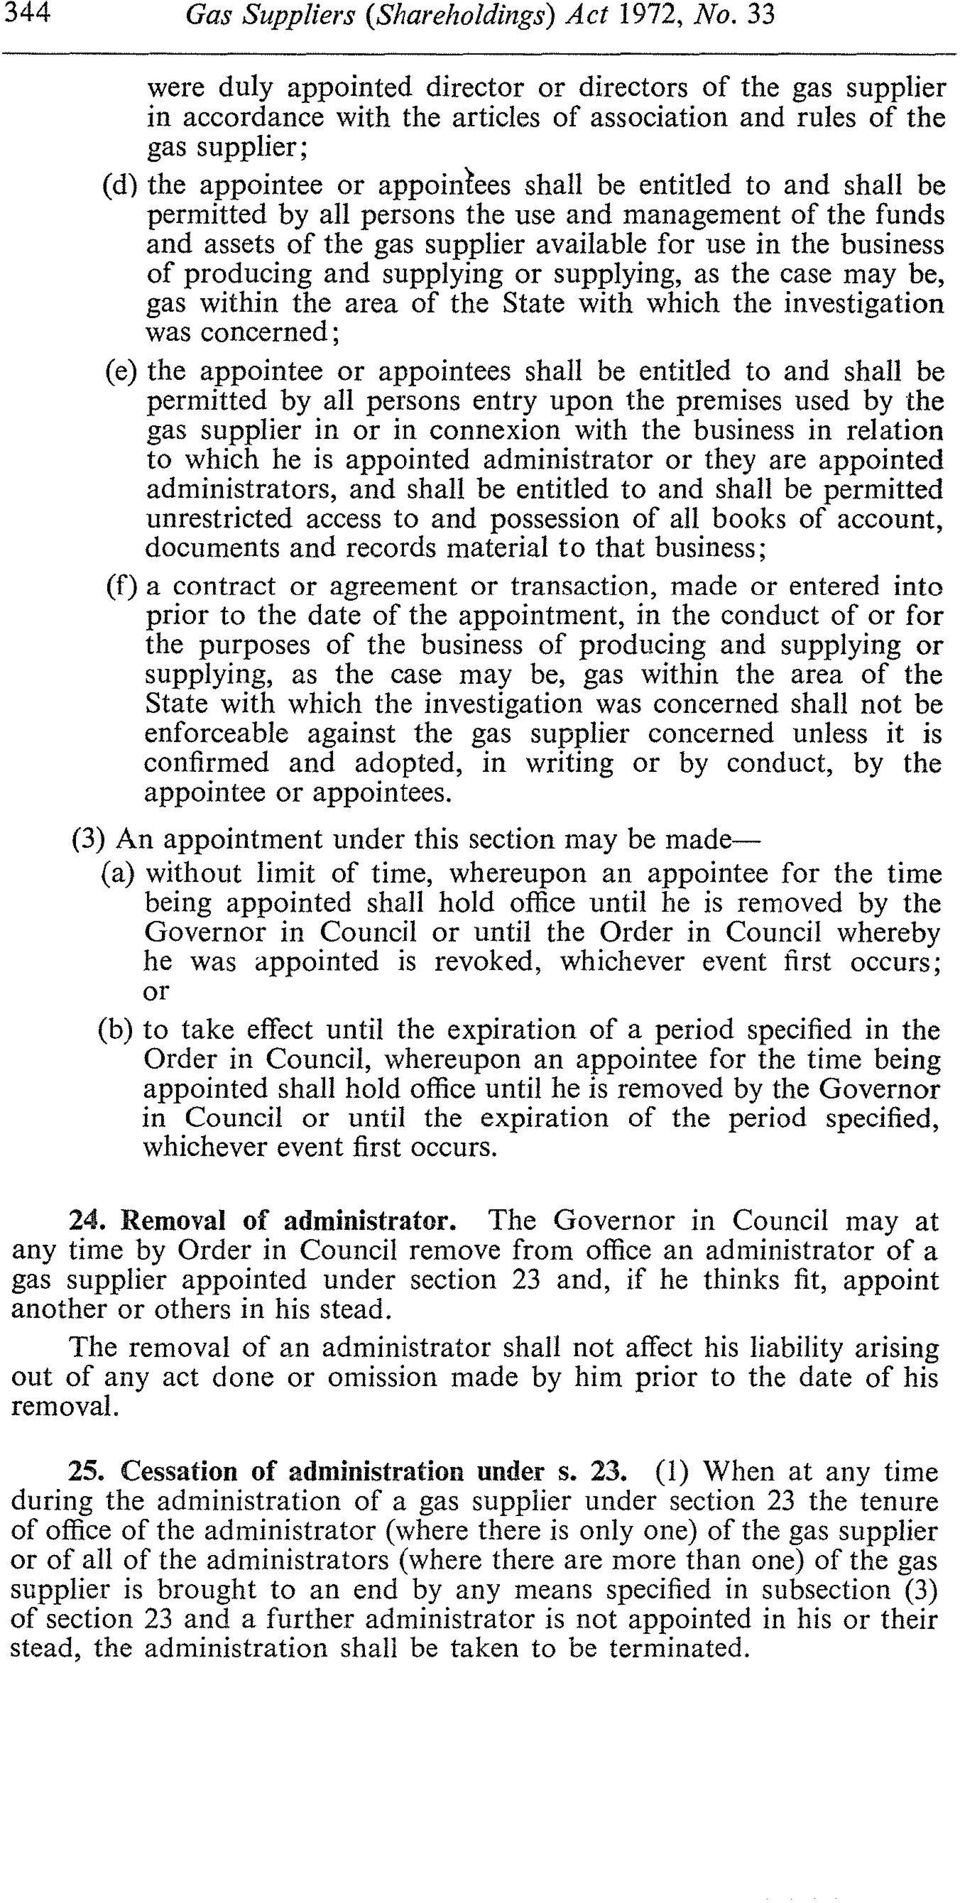 shall be permitted by all persons the use and management of the funds and assets of the gas supplier available for use in the business of producing and supplying or supplying, as the case may be, gas